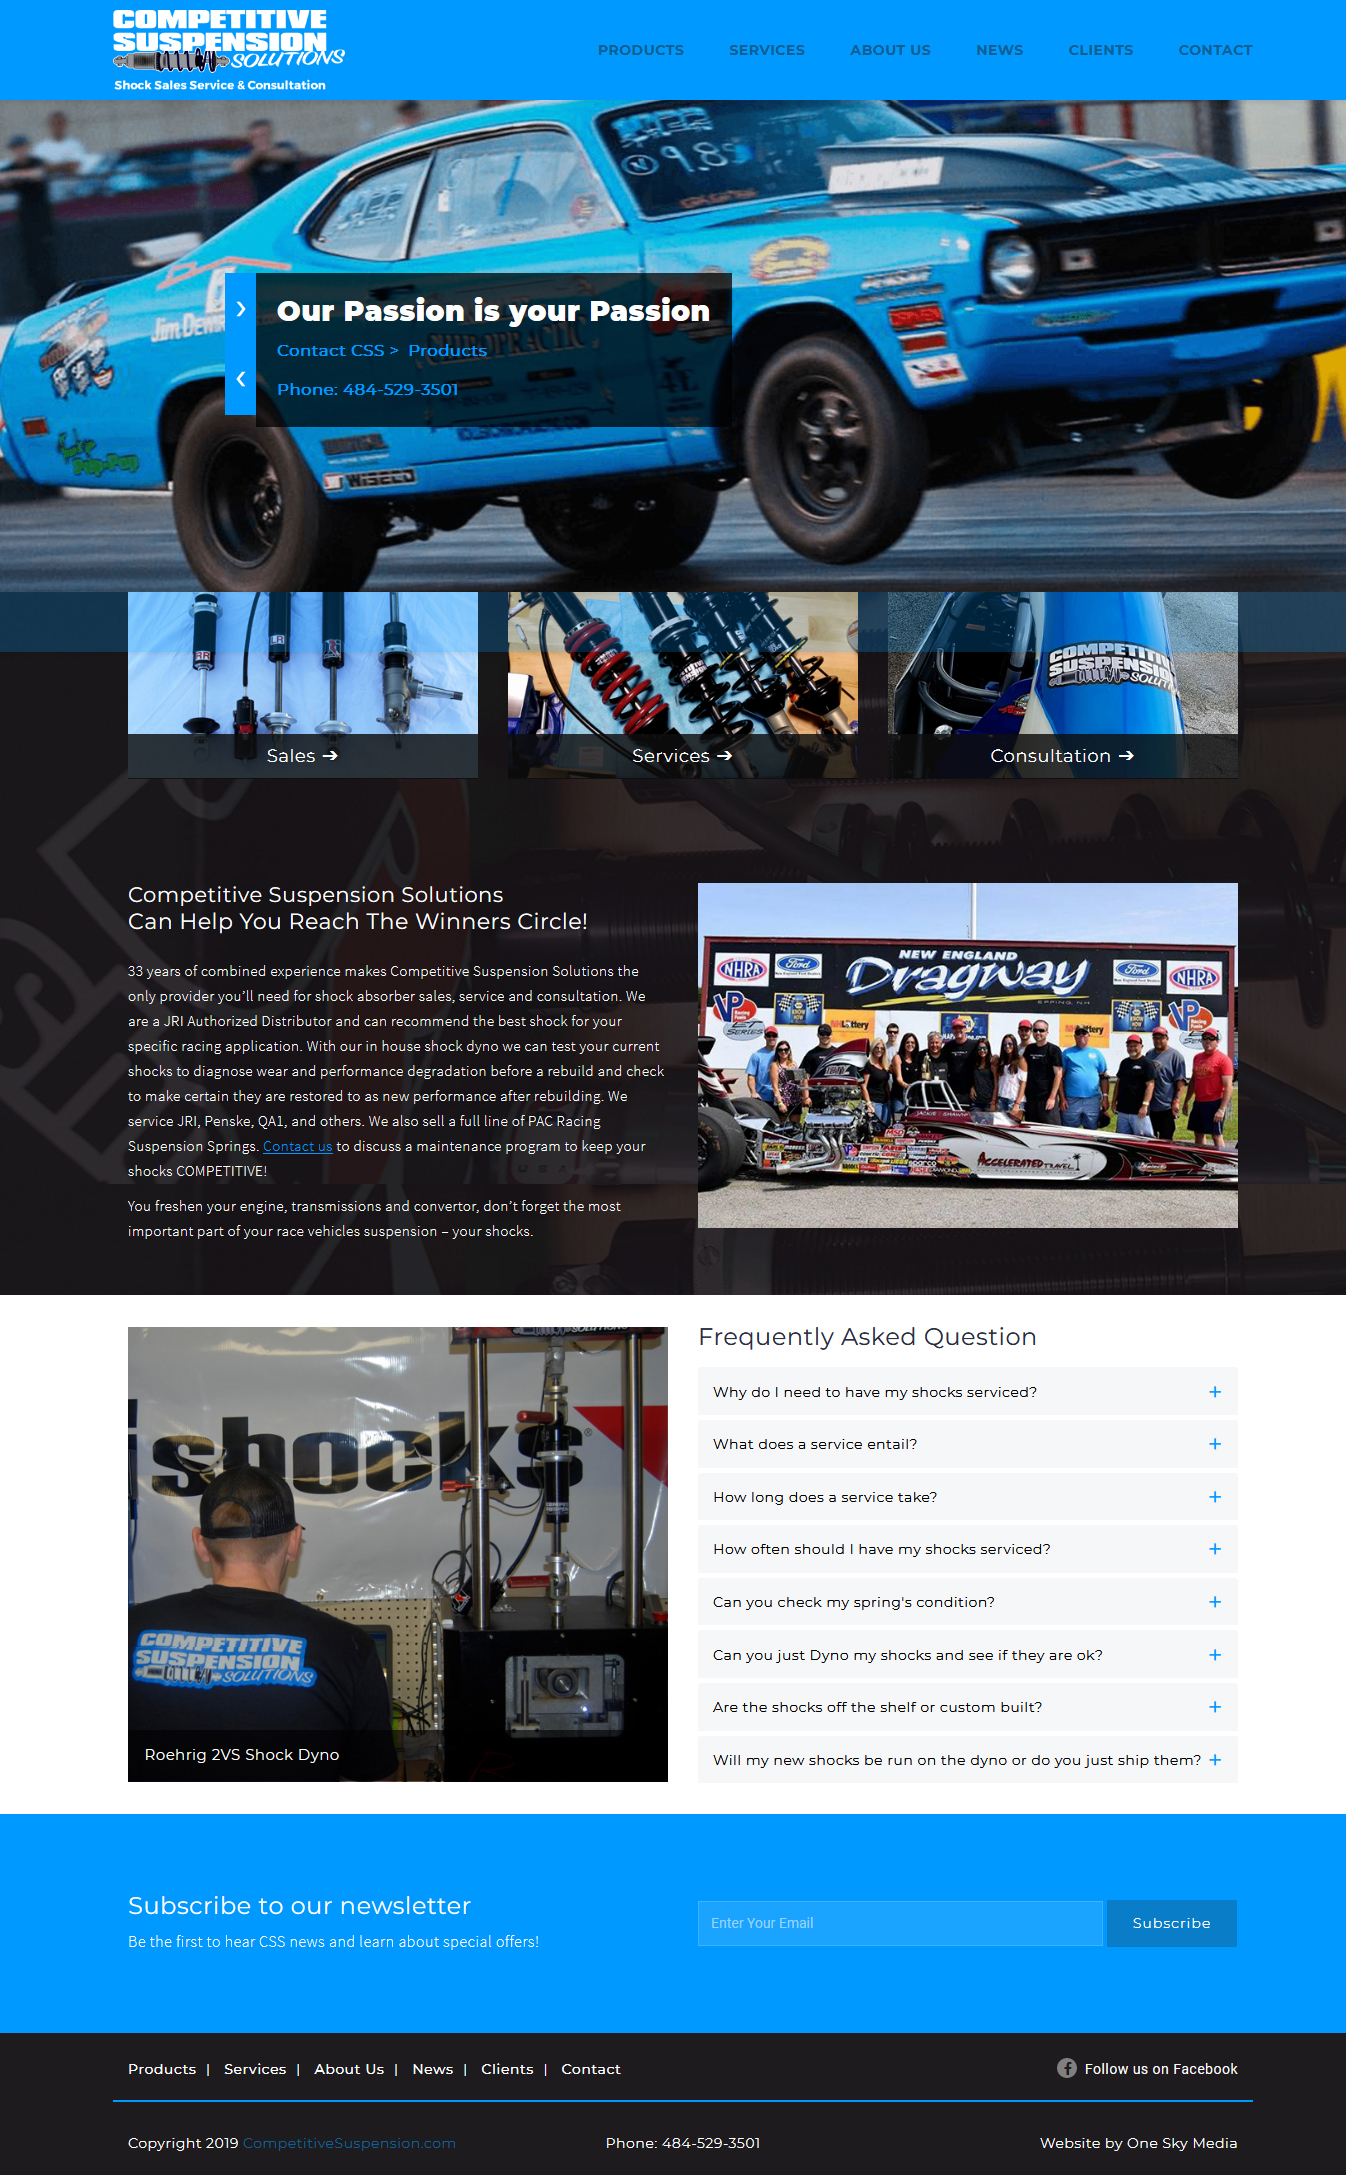 Competitive Suspension Solutions drag racing shock absorber website design